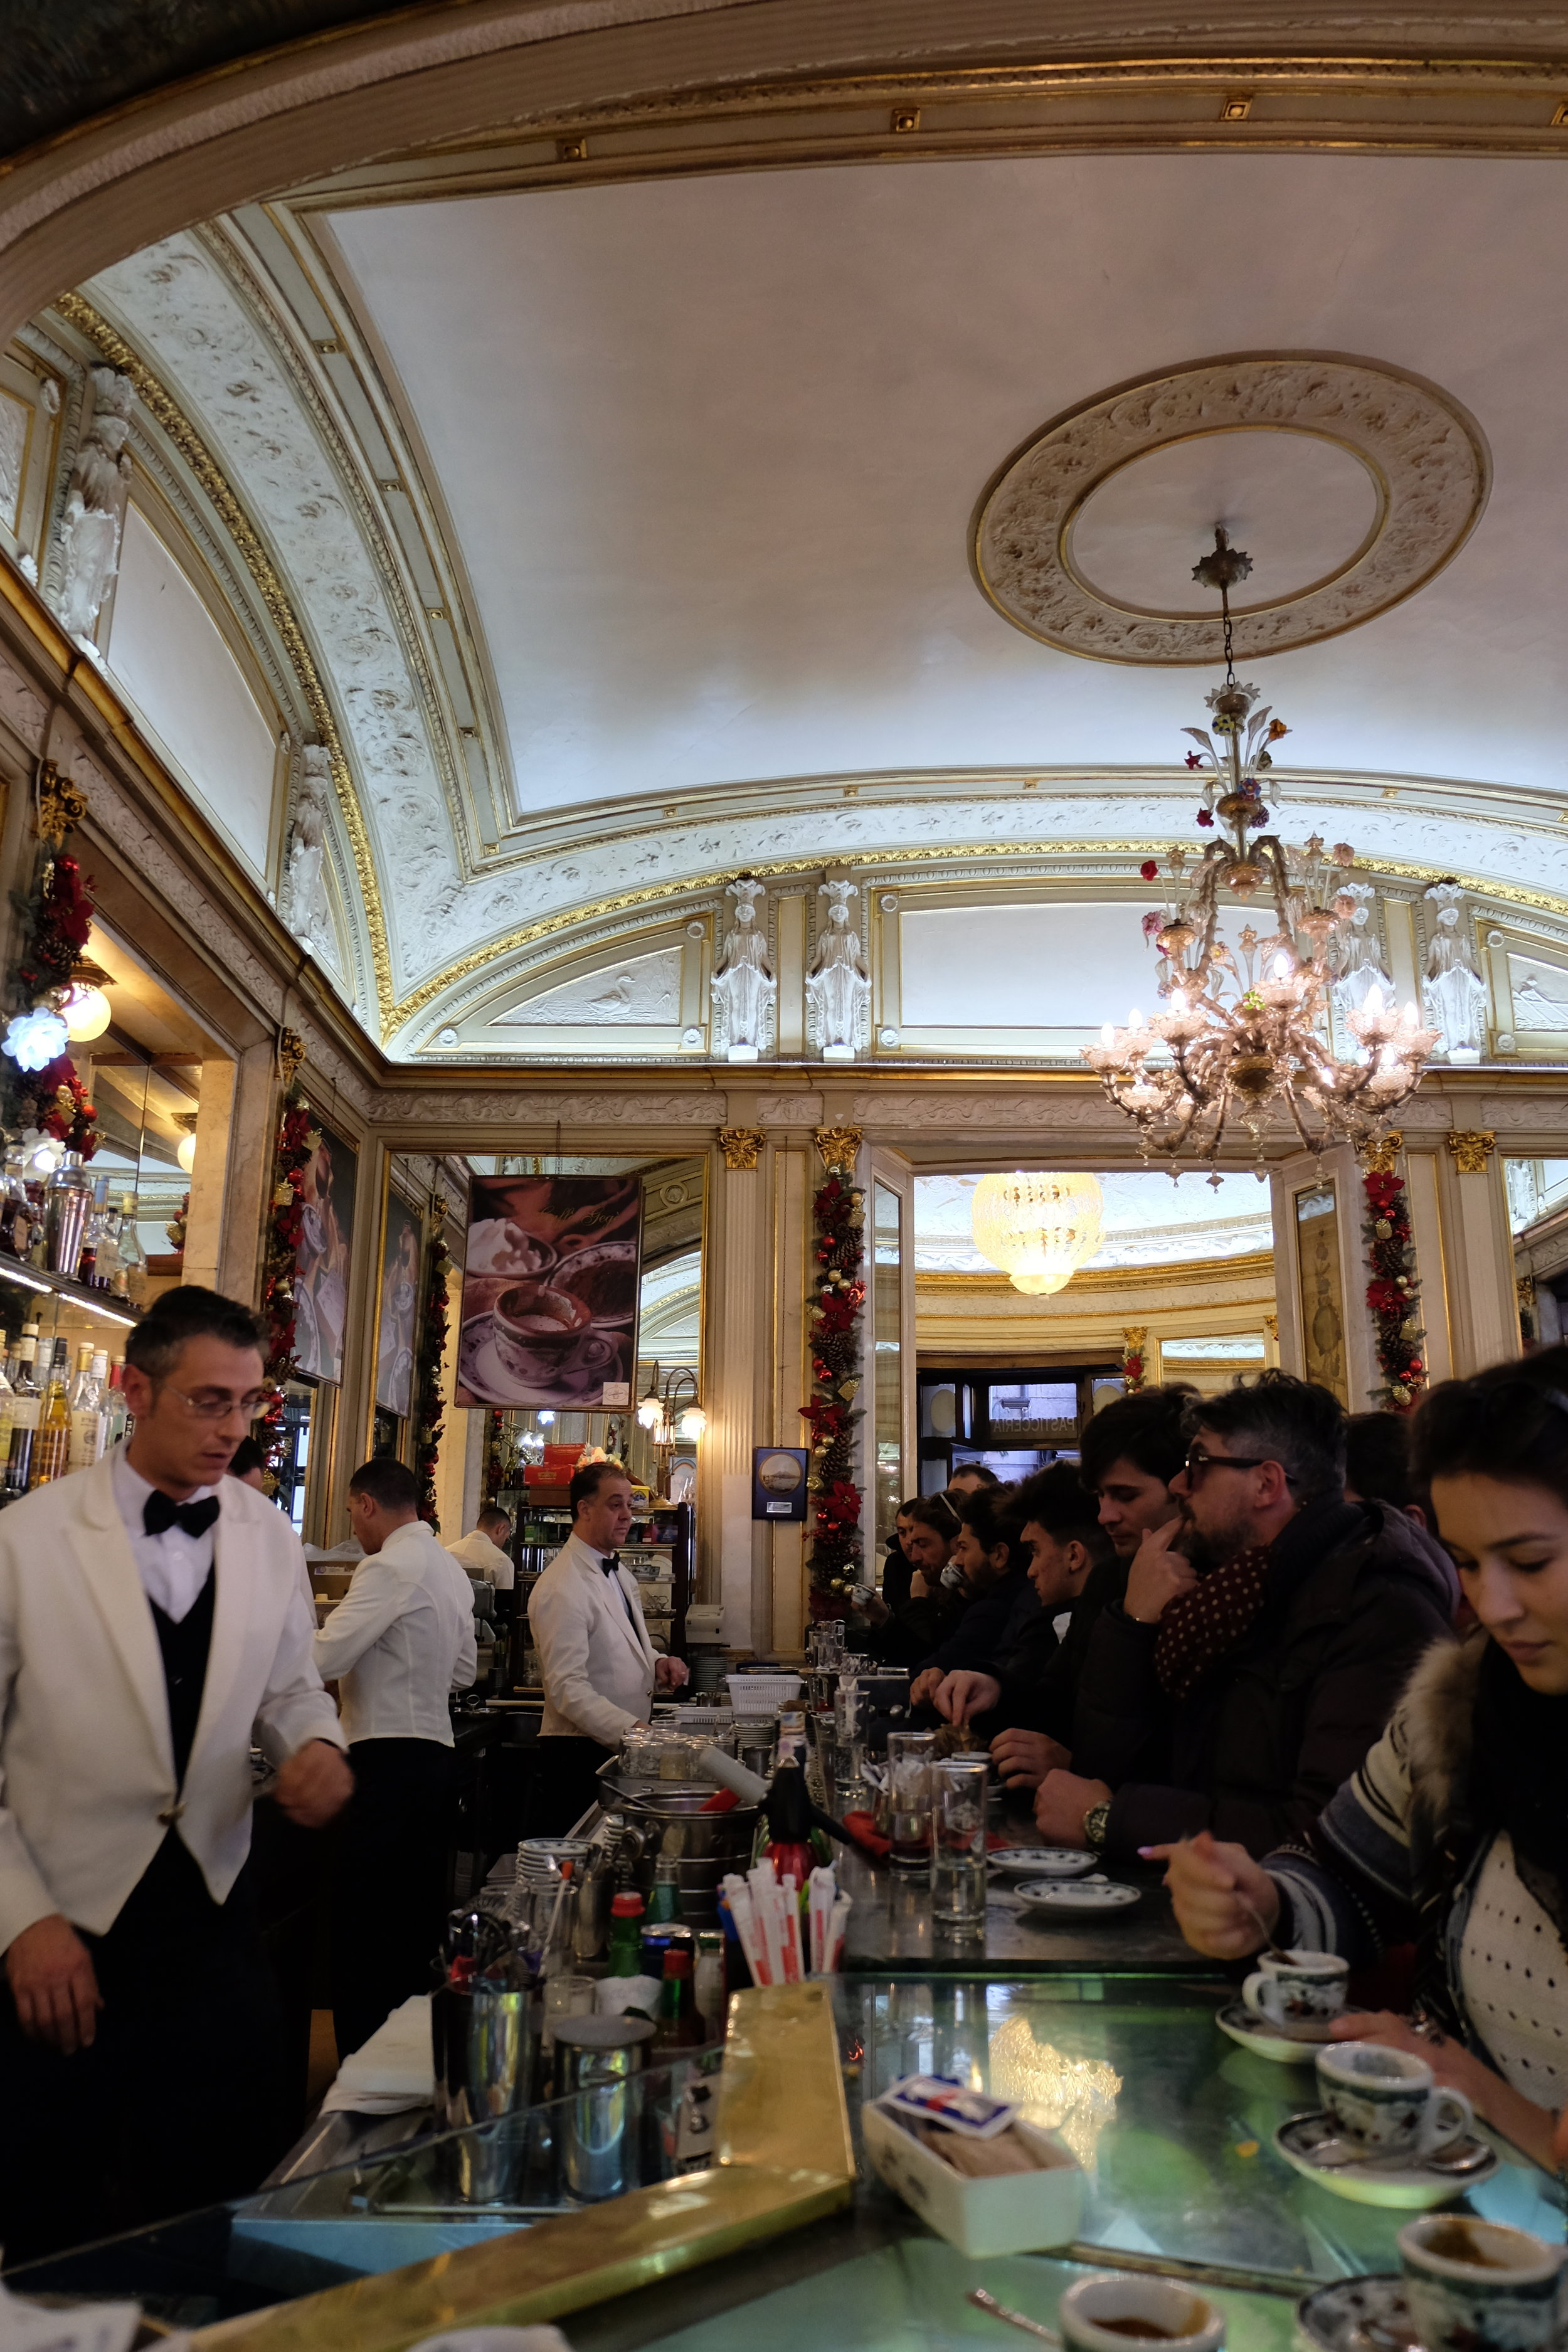 A real Neapolitan caffè at the Gambrinus is always a treat.